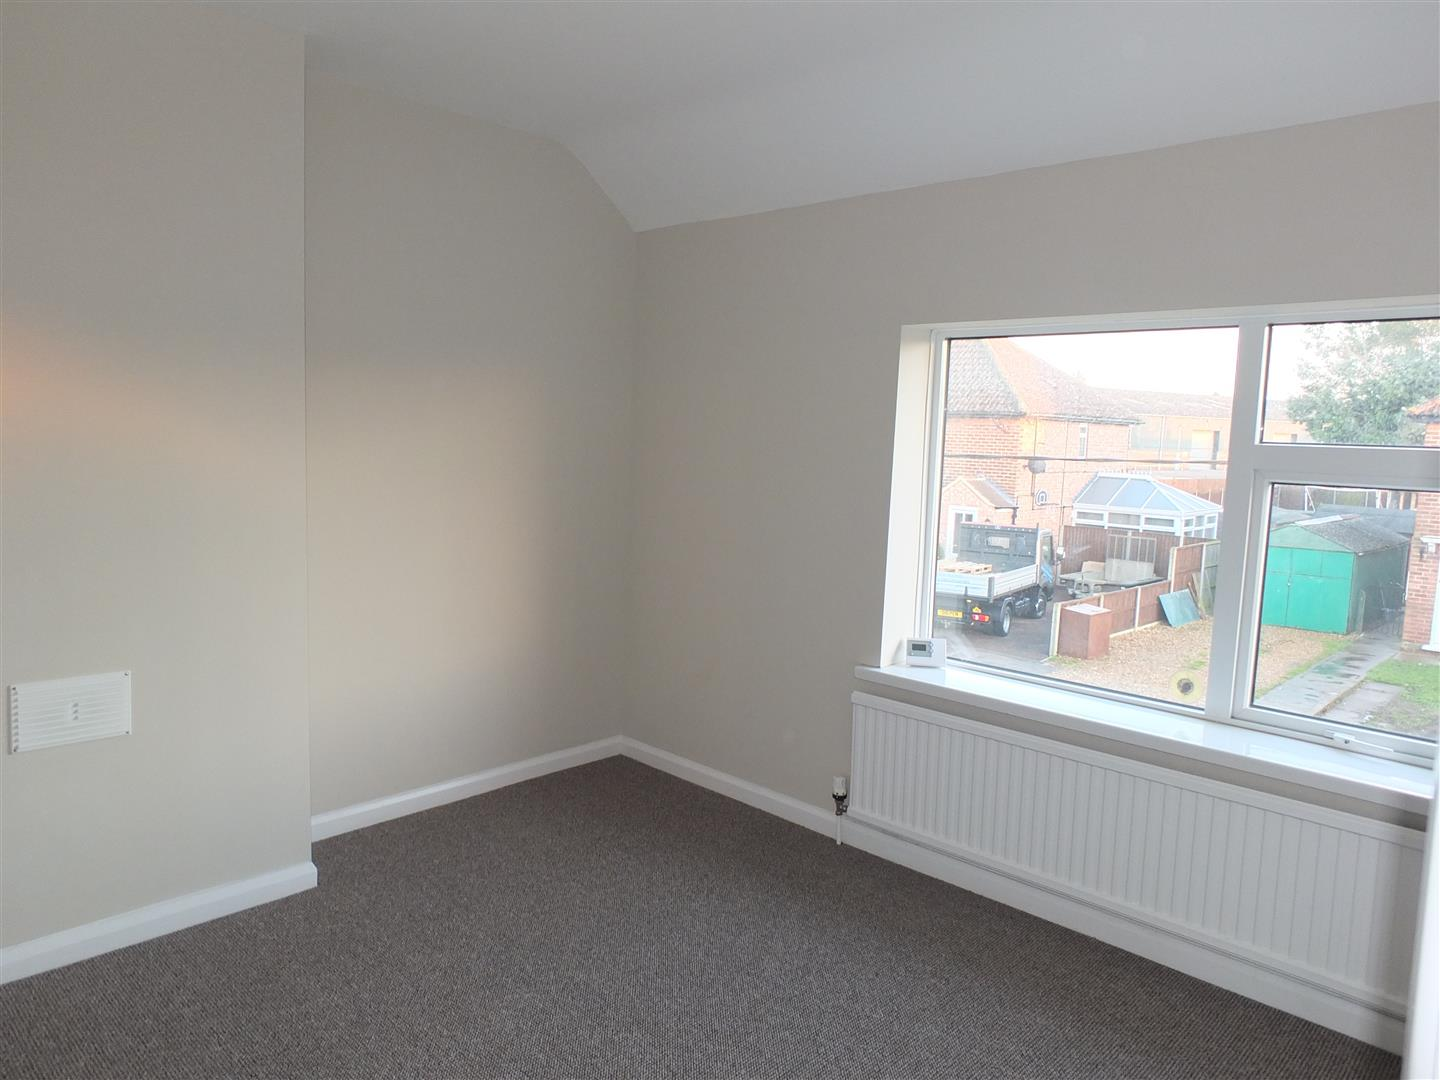 3 bed semi-detached house to rent in Long Sutton Spalding, PE12 9BT 4